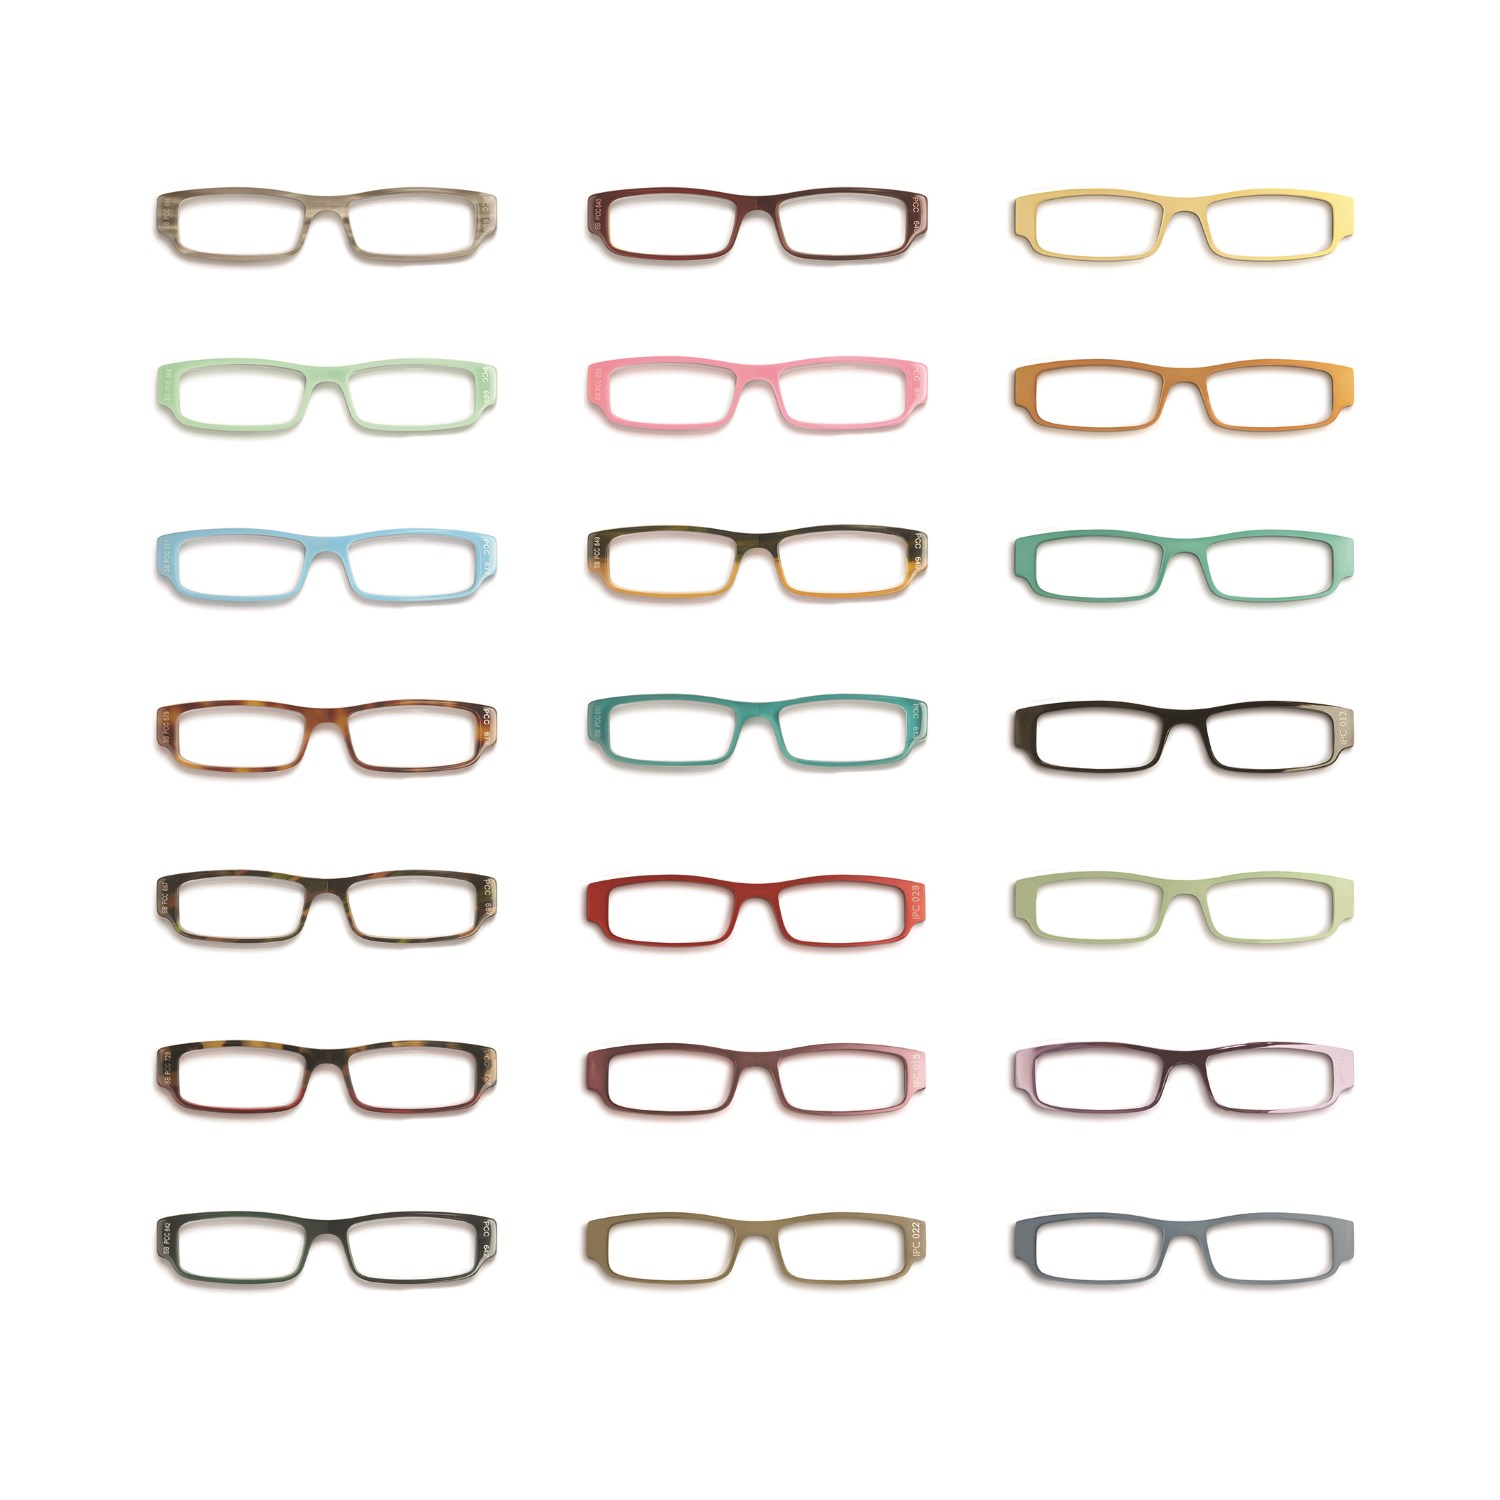 Titanium colour options available for Tom Davies Bespoke frames